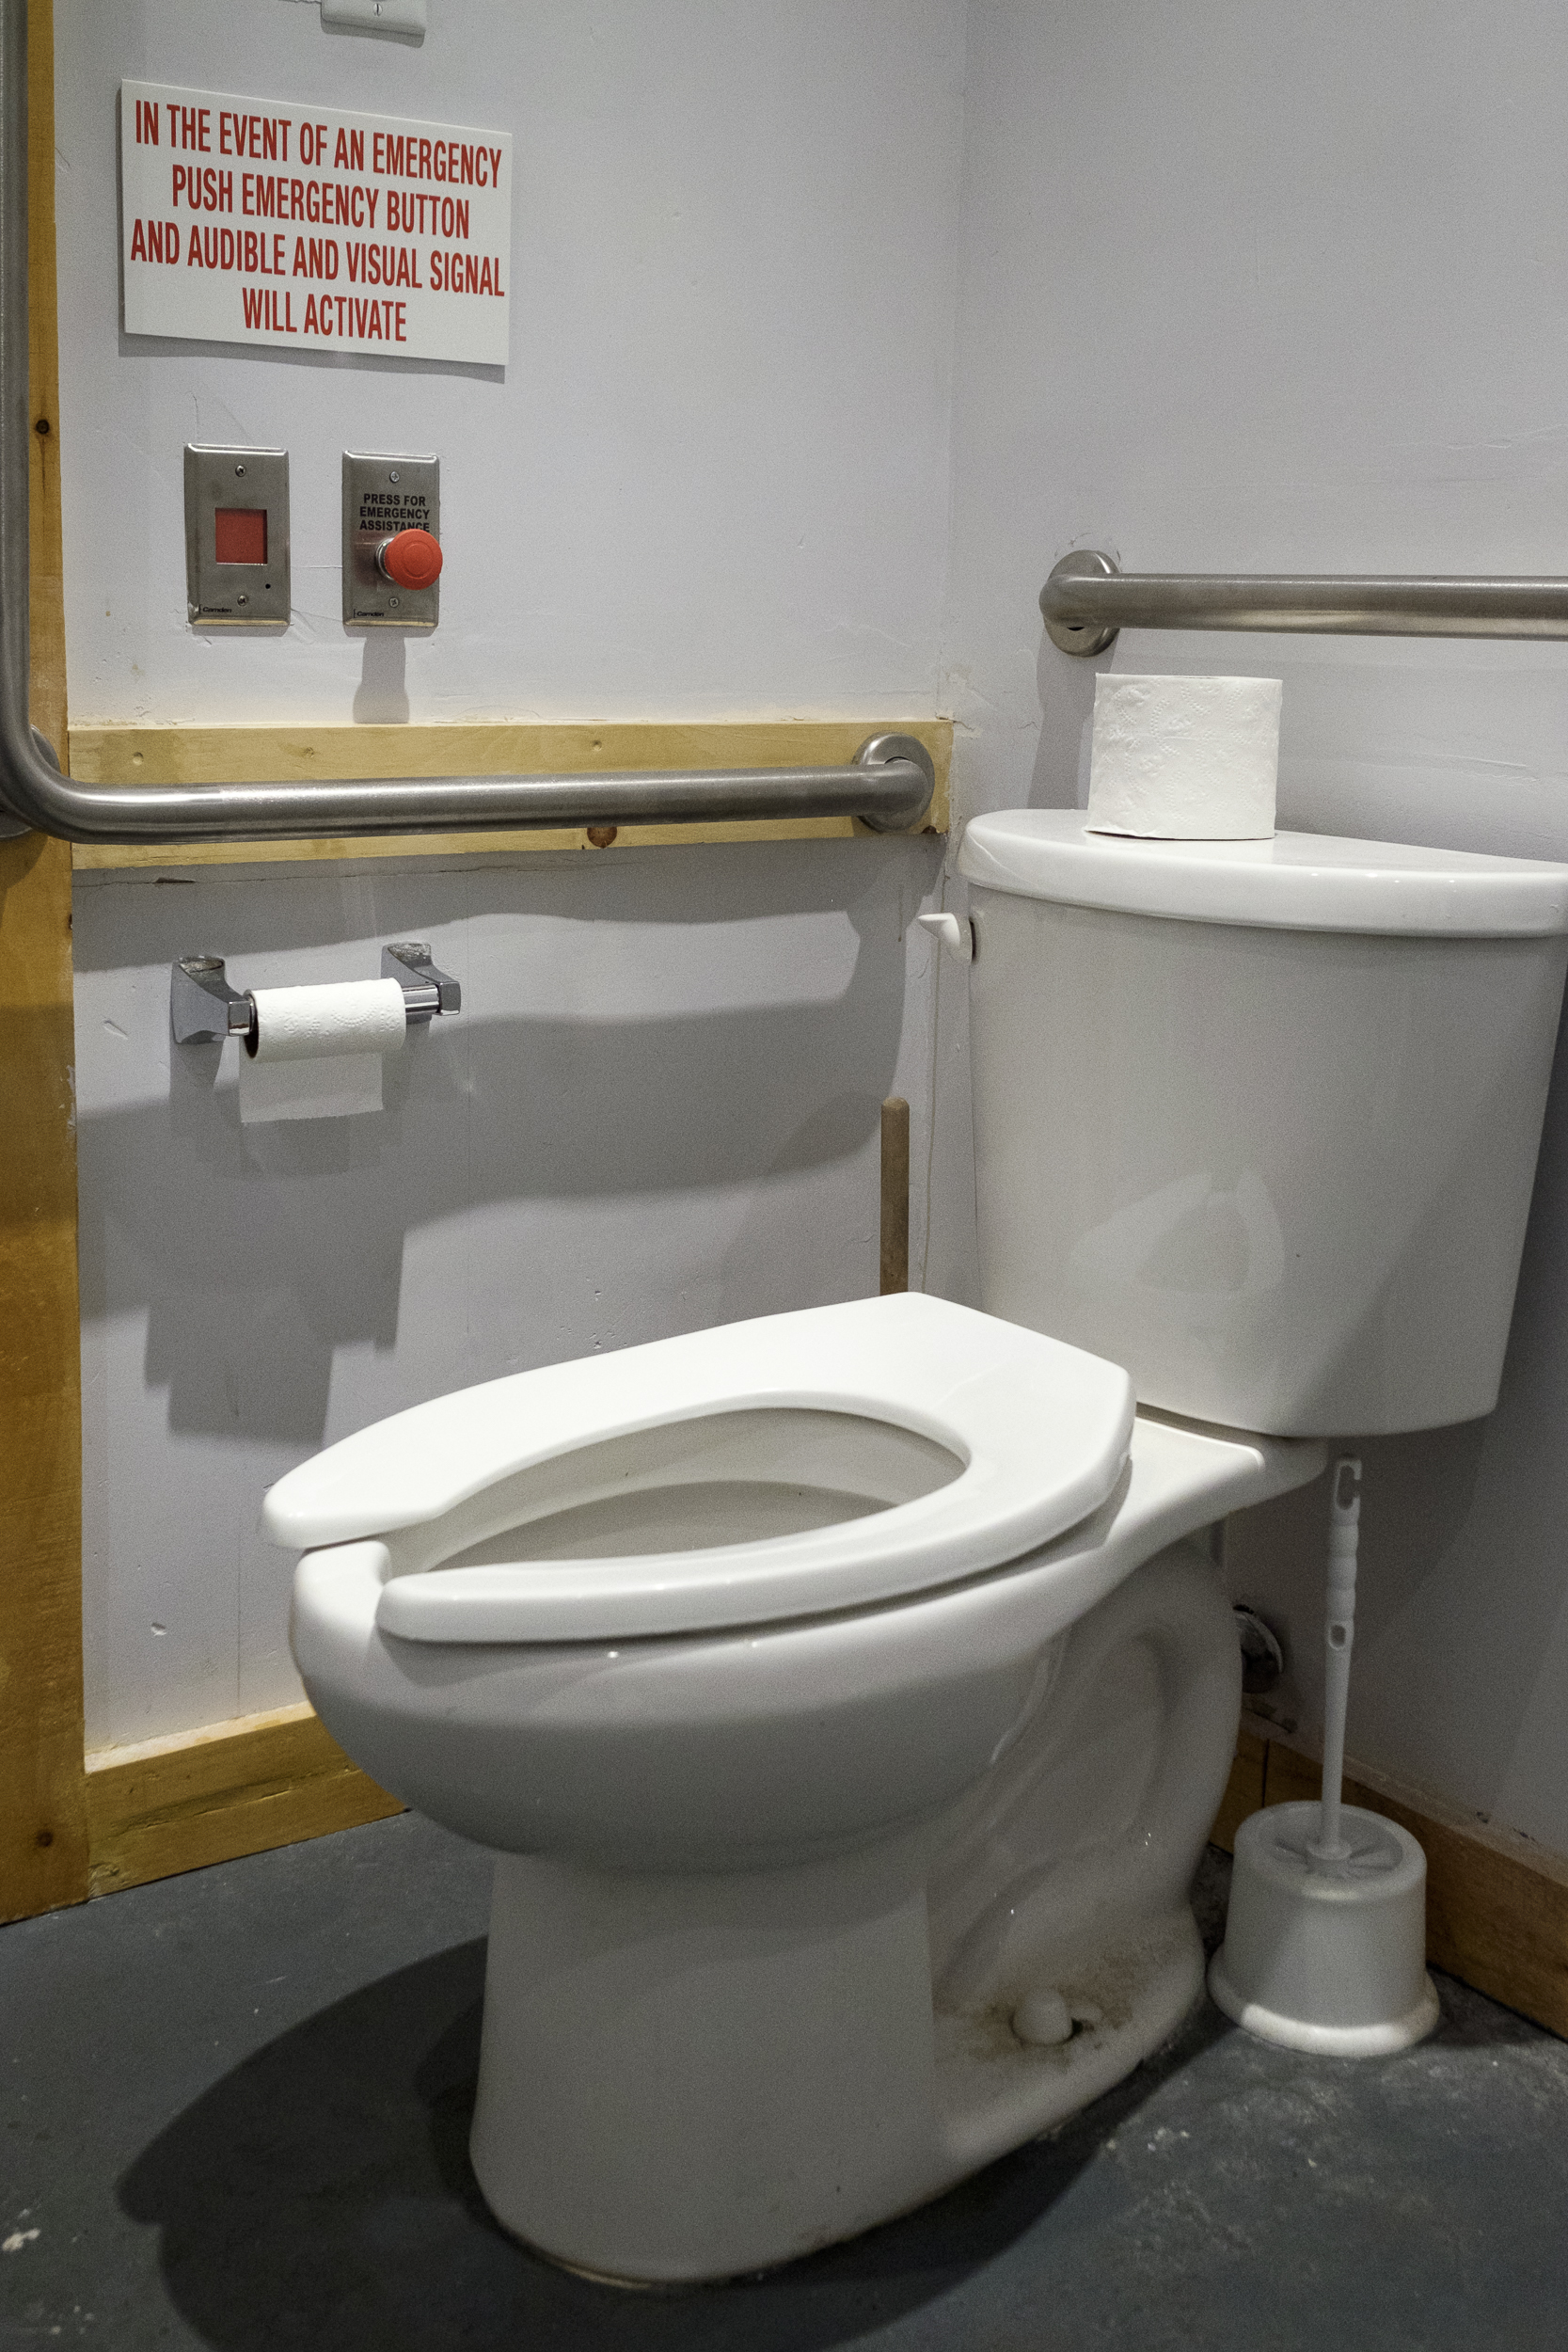 Picture of toilet with grab bars and button to press incase of emergency